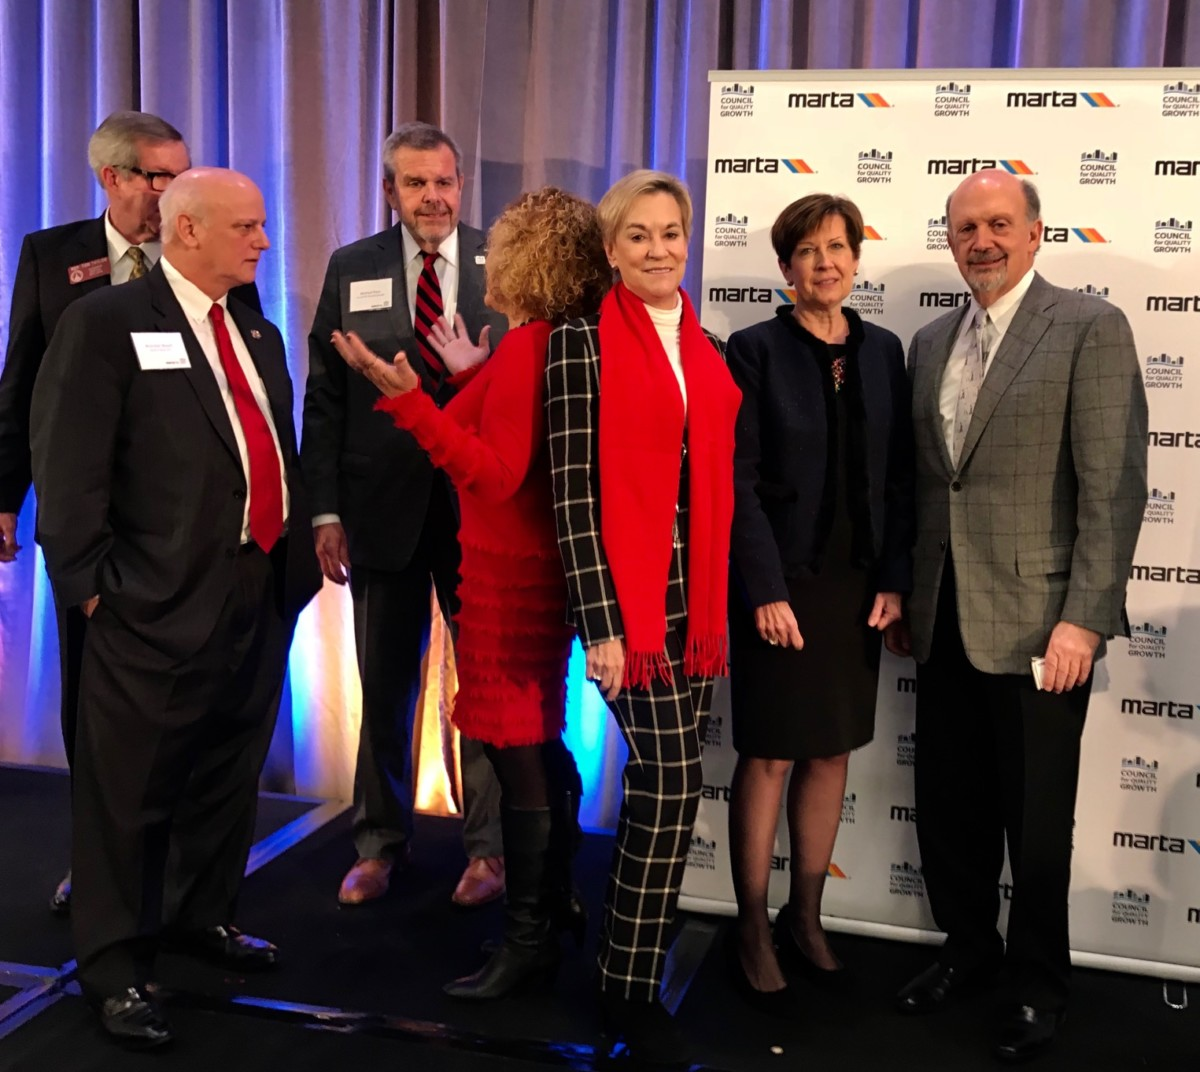 Legislative and business leaders at the State of MARTA breakfast on Friday morning. Credit: Kelly Jordan